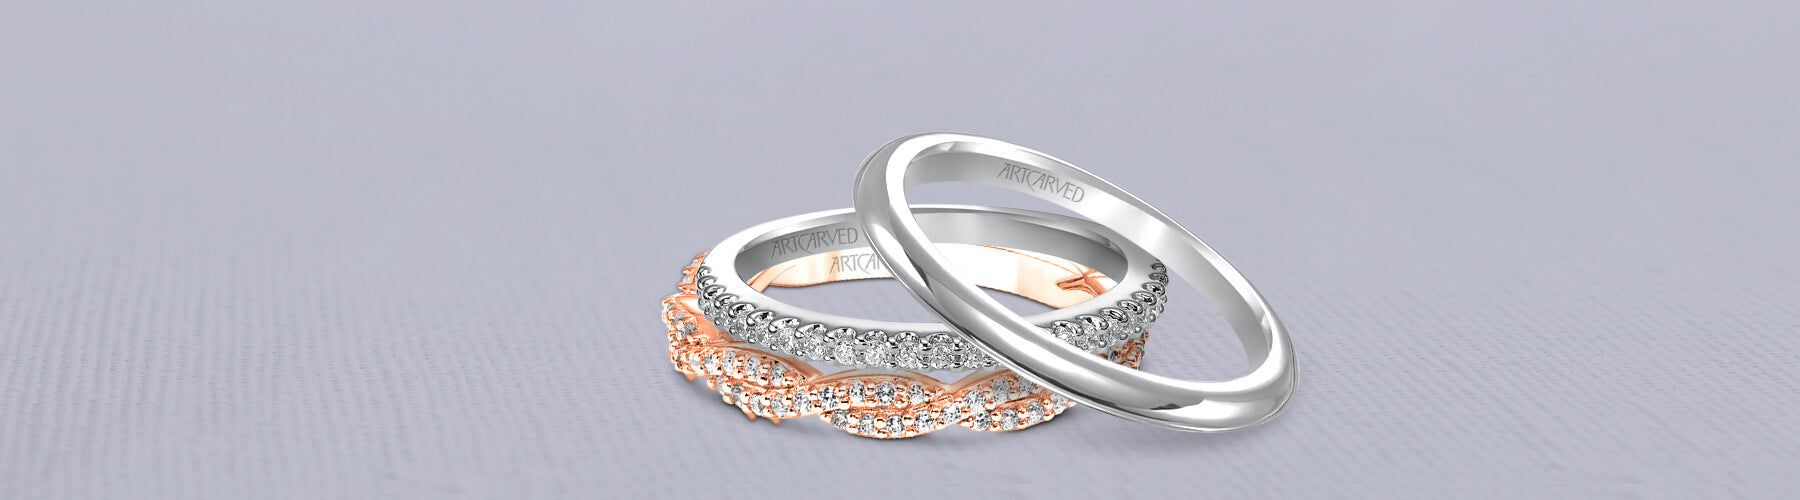 Difference Between Engagement And Wedding Ring.Women S Wedding Bands Artcarvedbridal